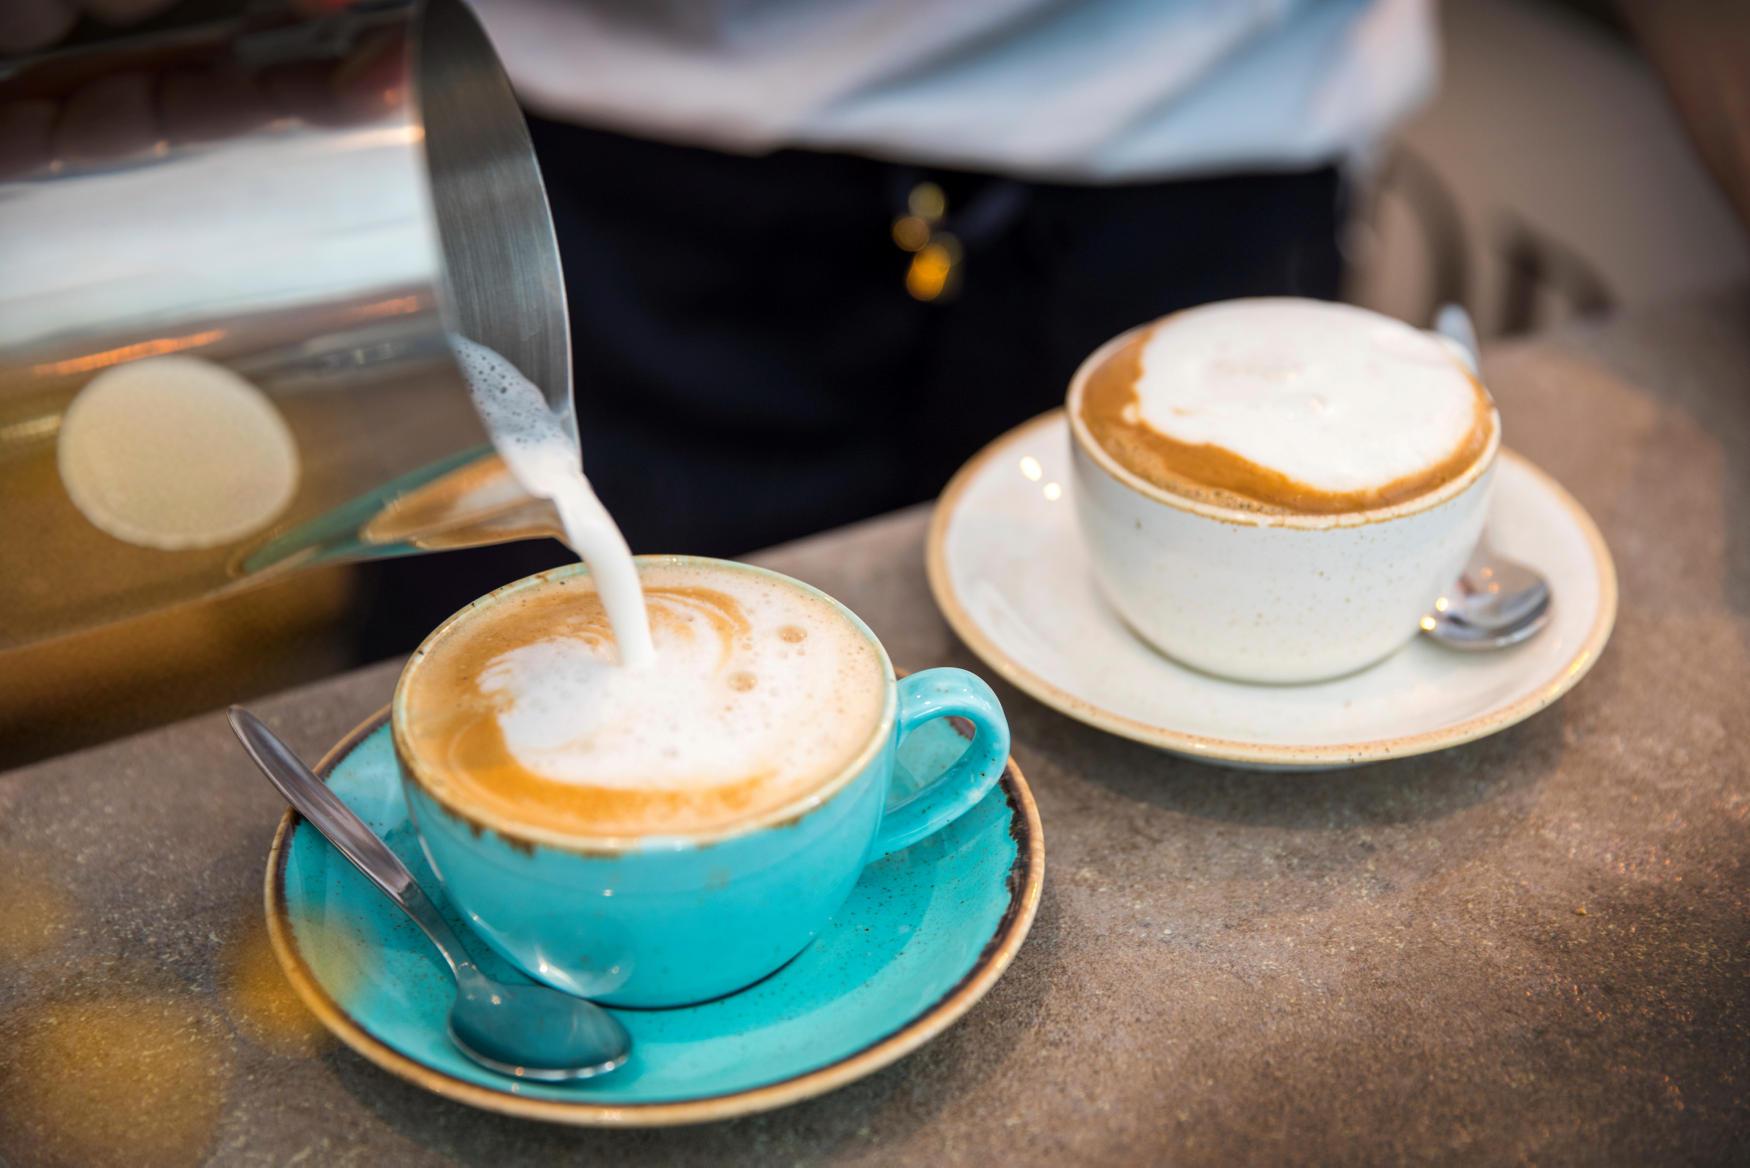 Barista pouring frothy milk into coffee cup, close-up